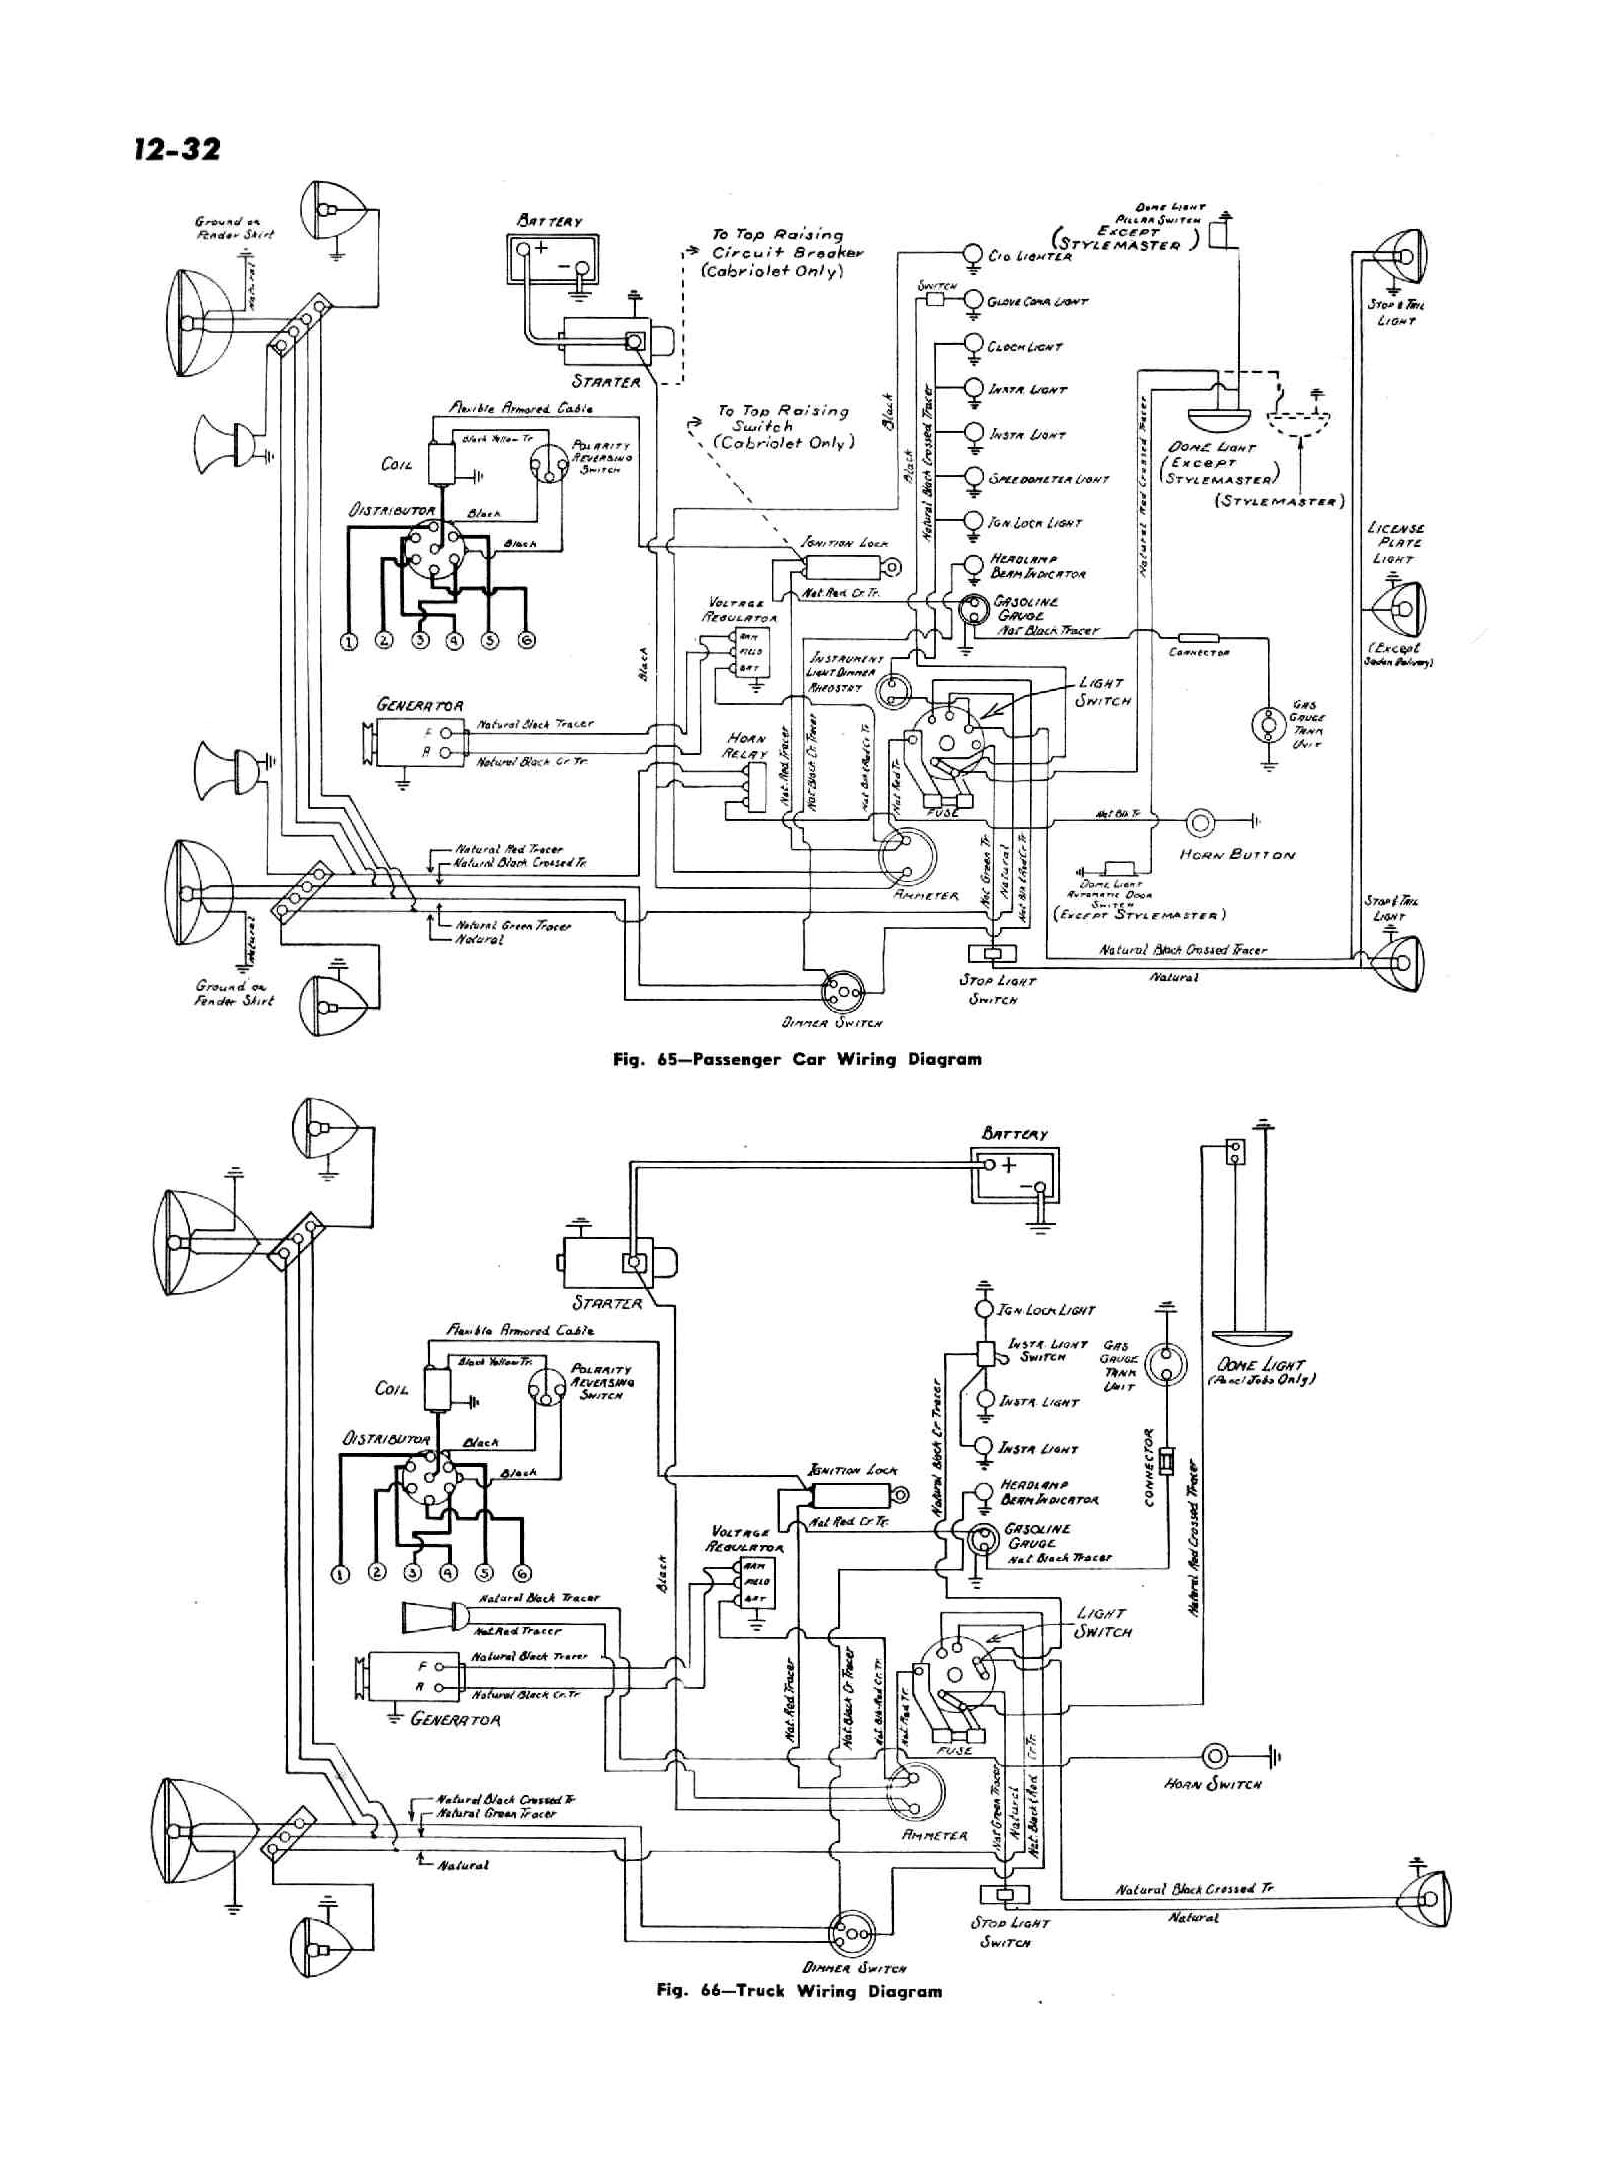 1958 chevy truck headlight switch wiring diagram